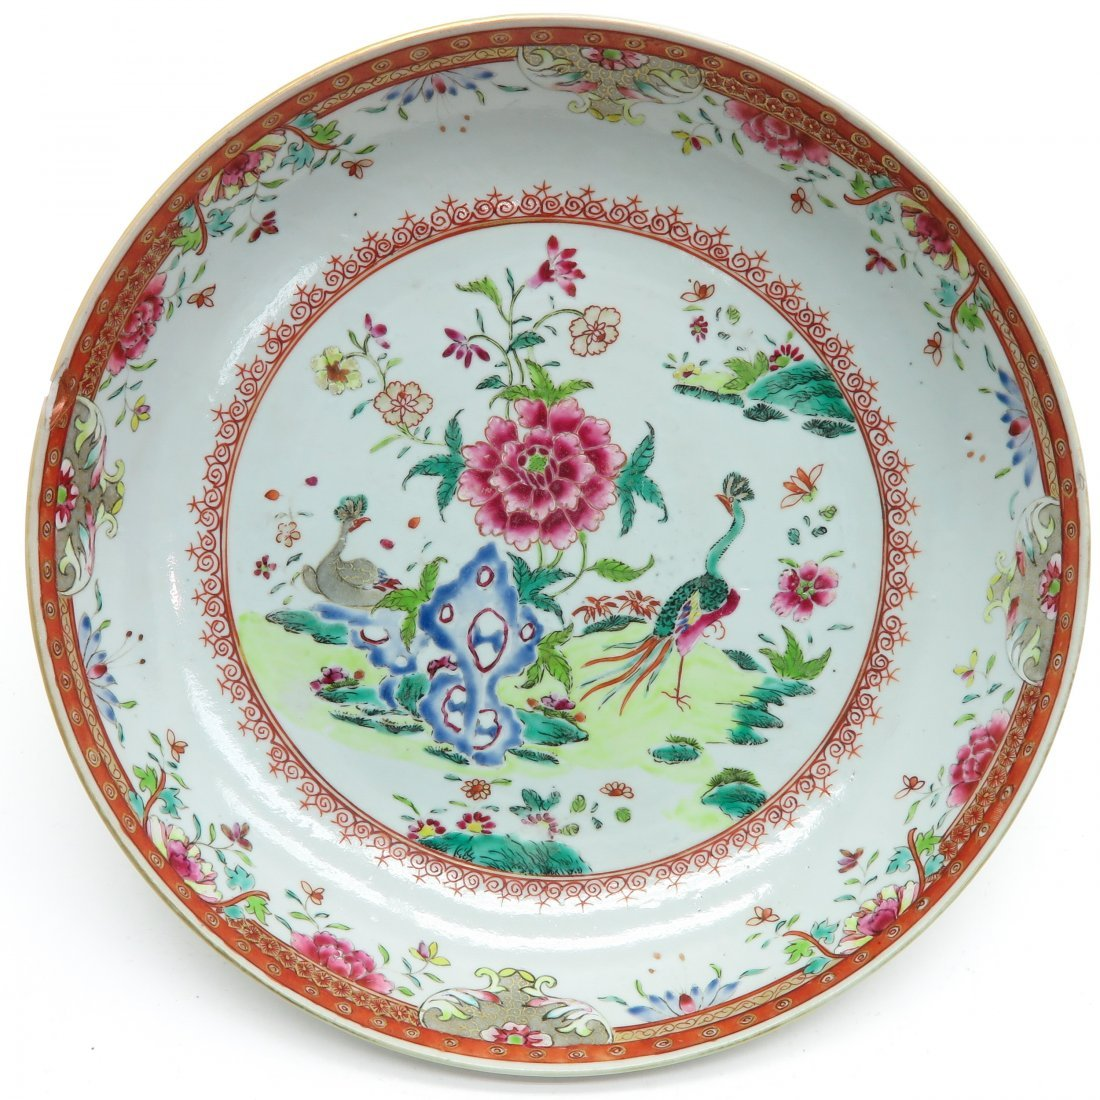 18th Century China Porcelain Famille Rose Decor Plate